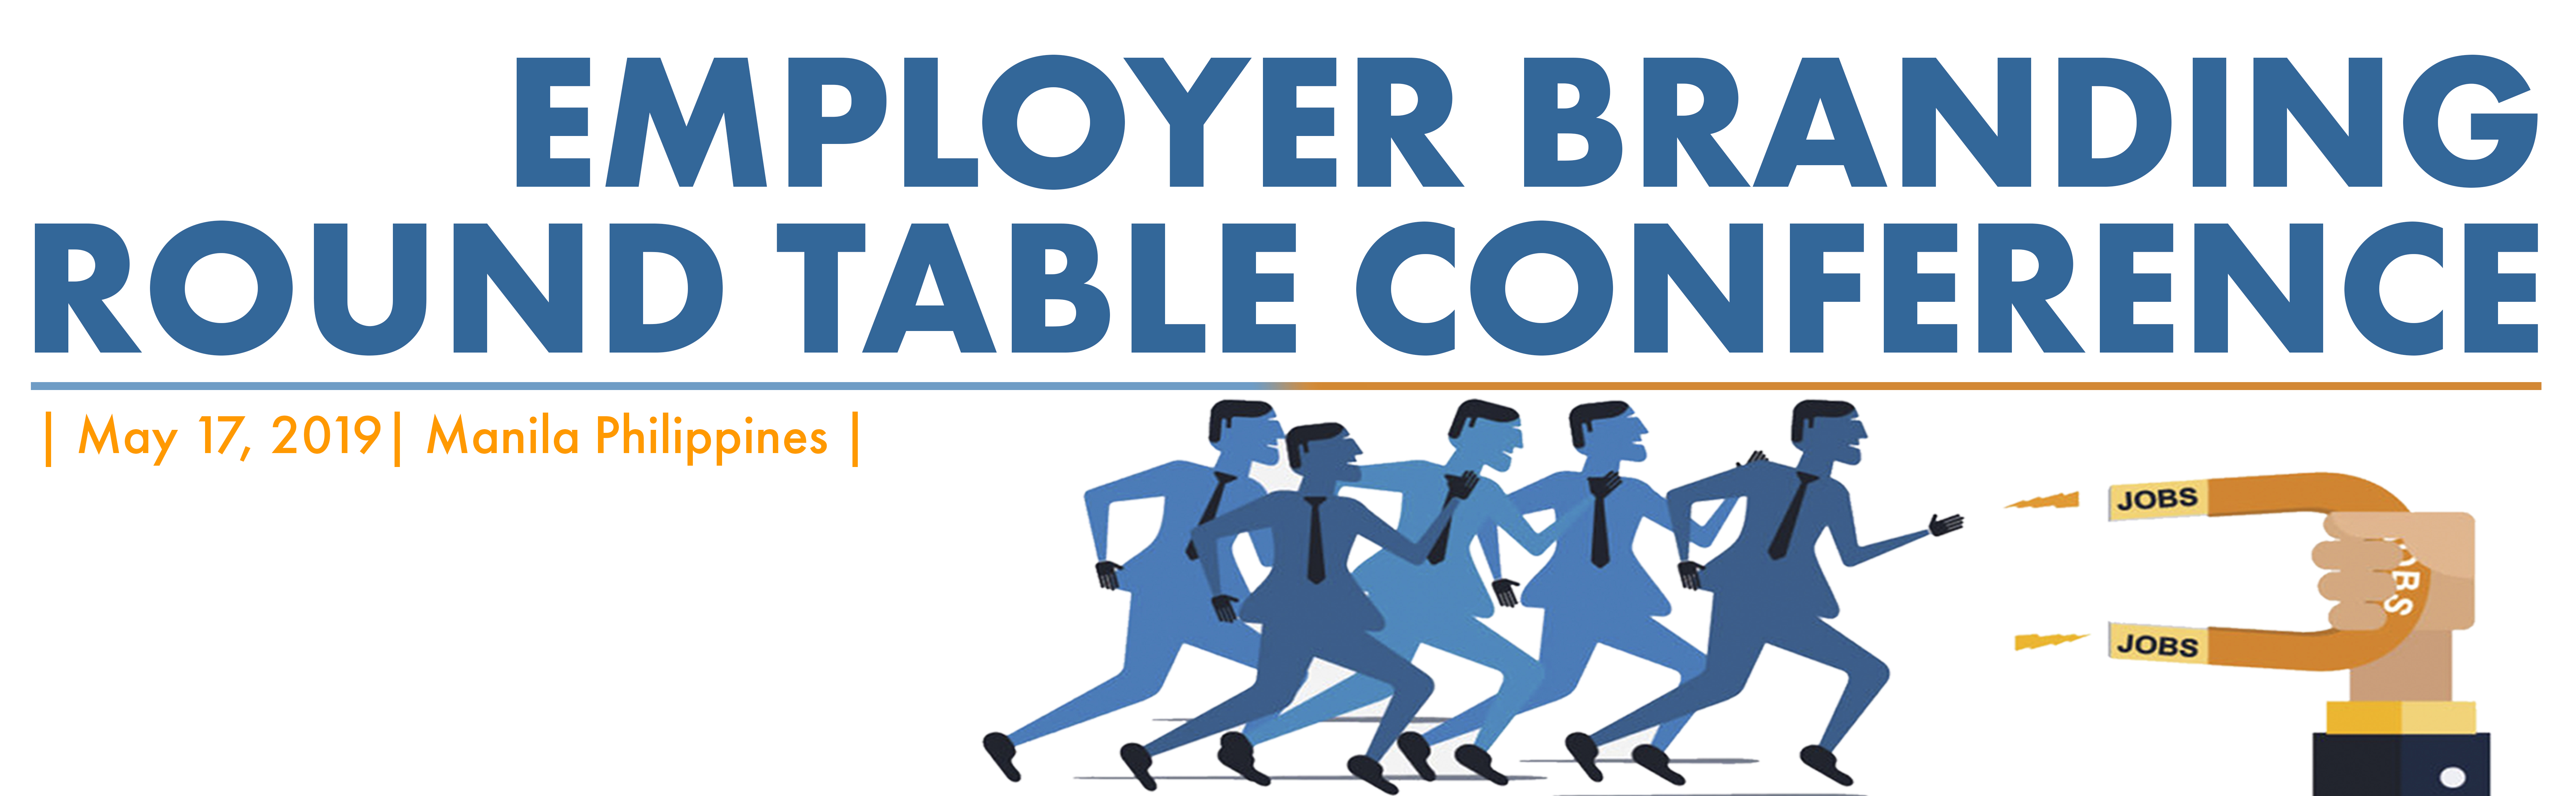 Employer Branding Round Table Conference